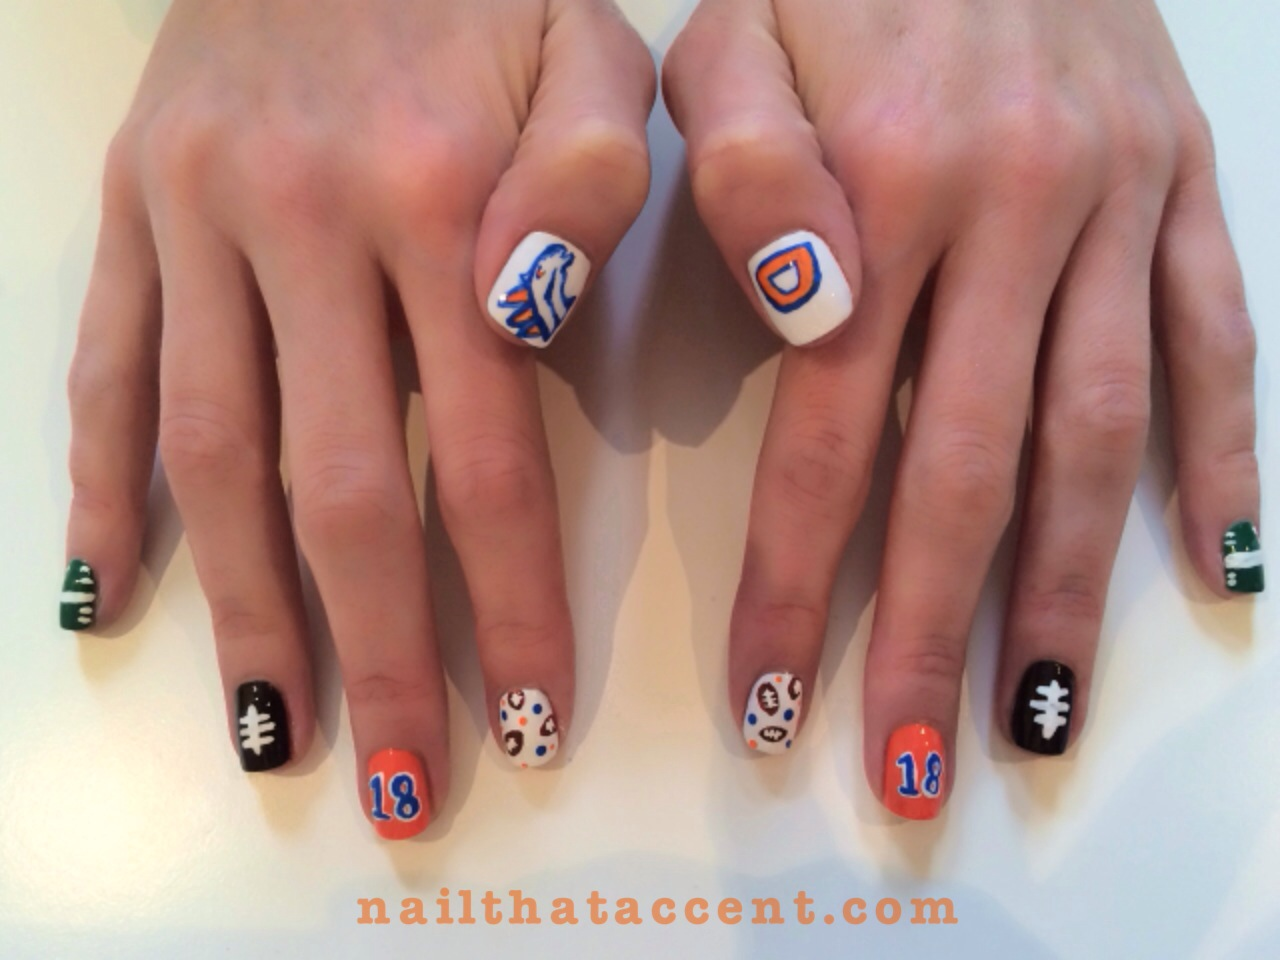 Denver broncos toe nail art nail art ideas nfl broncos nail designs best nails 2018 prinsesfo Gallery